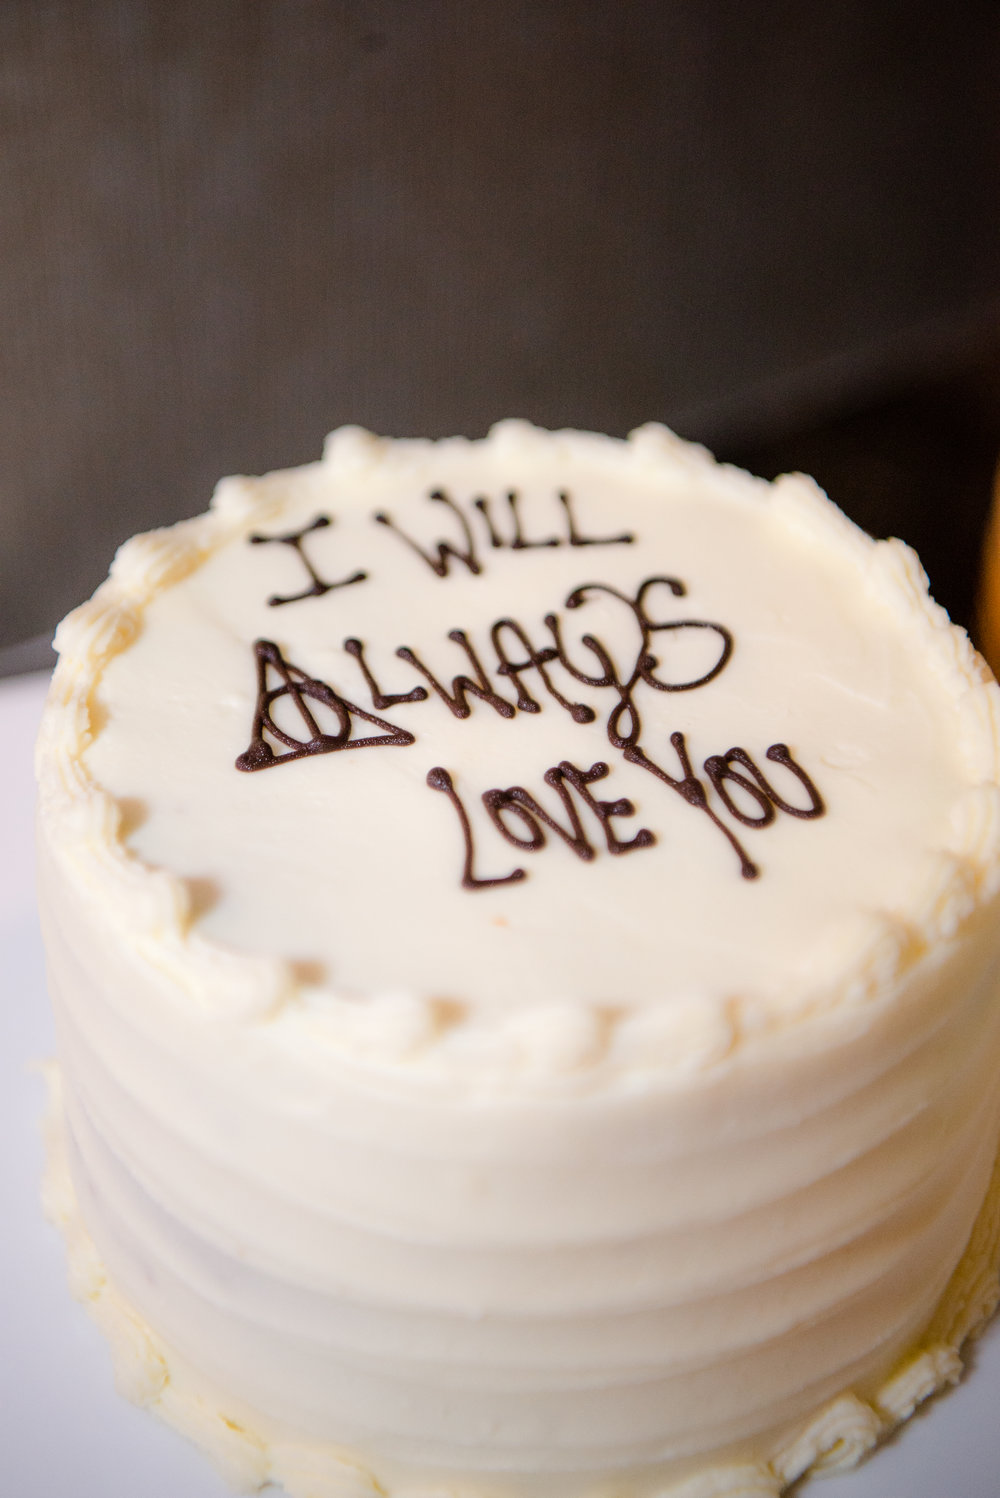 Salish Lodge Wedding_Kelsey Lane Photography_Montana Wedding Photographer_Missoula Wedding Photographer_Bozeman Wedding Photographer_wedding cake_Harry Potter wedding cake